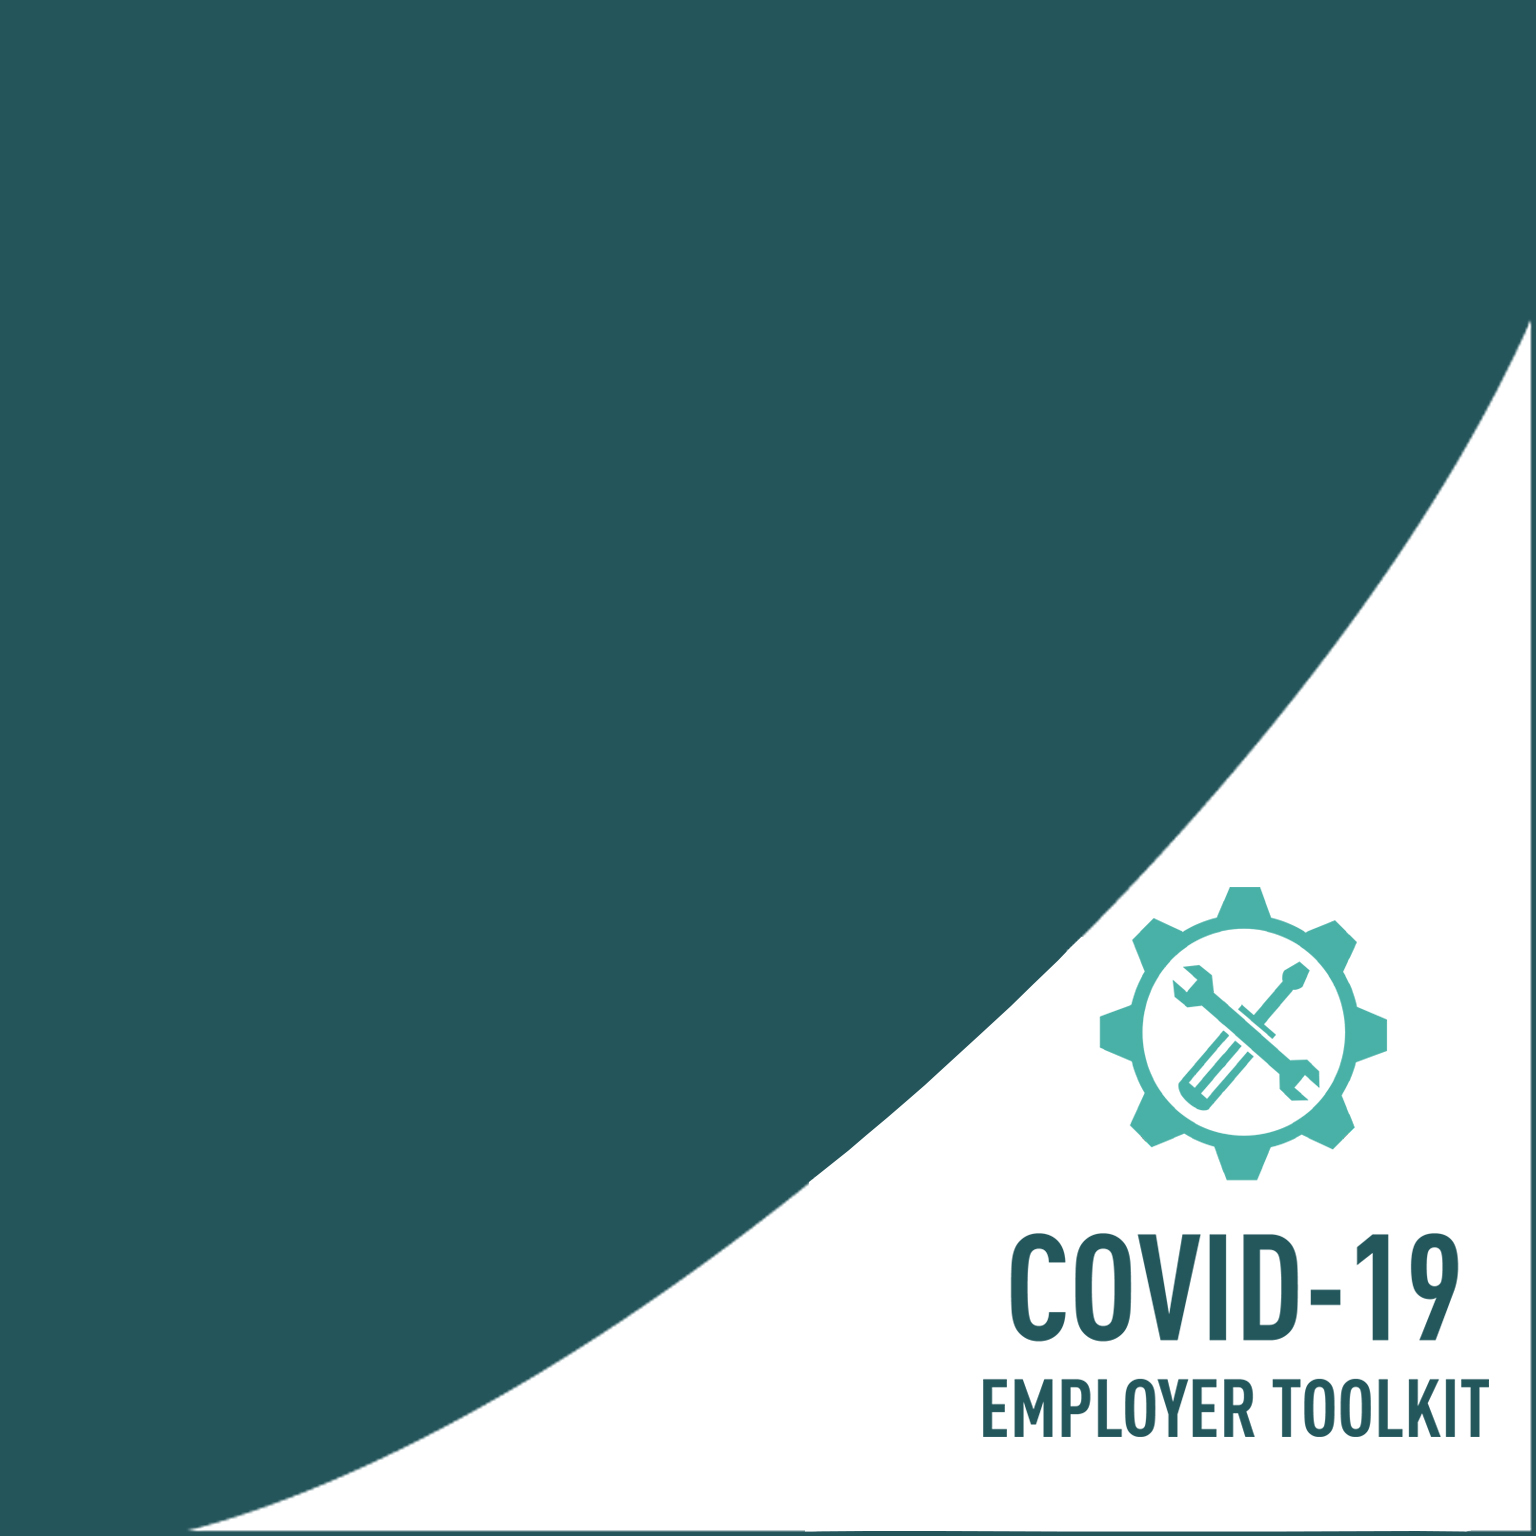 COVID toolkit (just use logo)